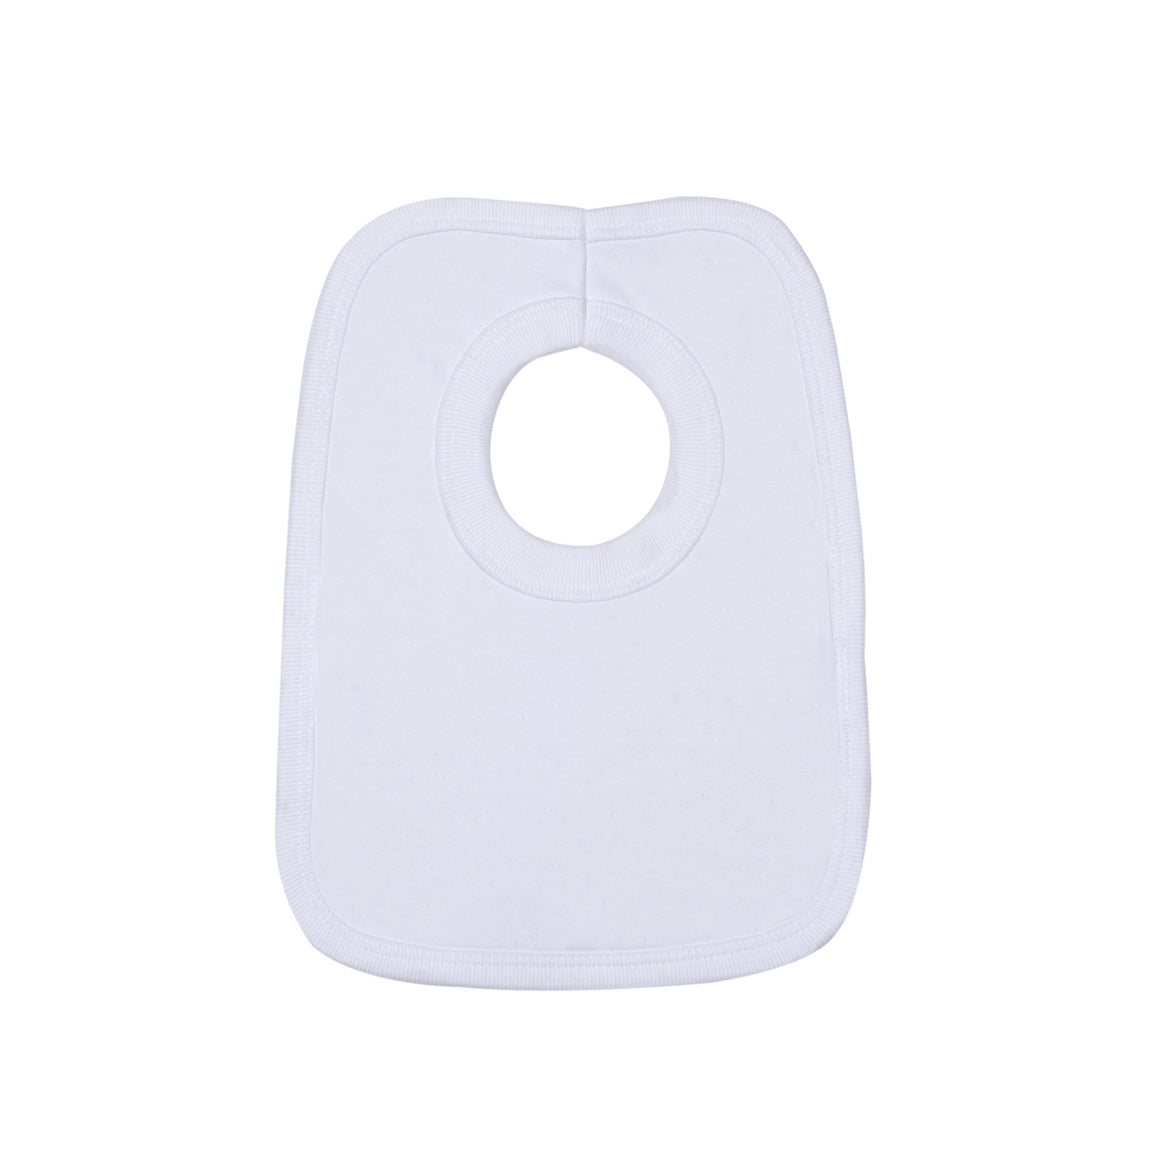 Anita's House Pure Cotton Bib - White